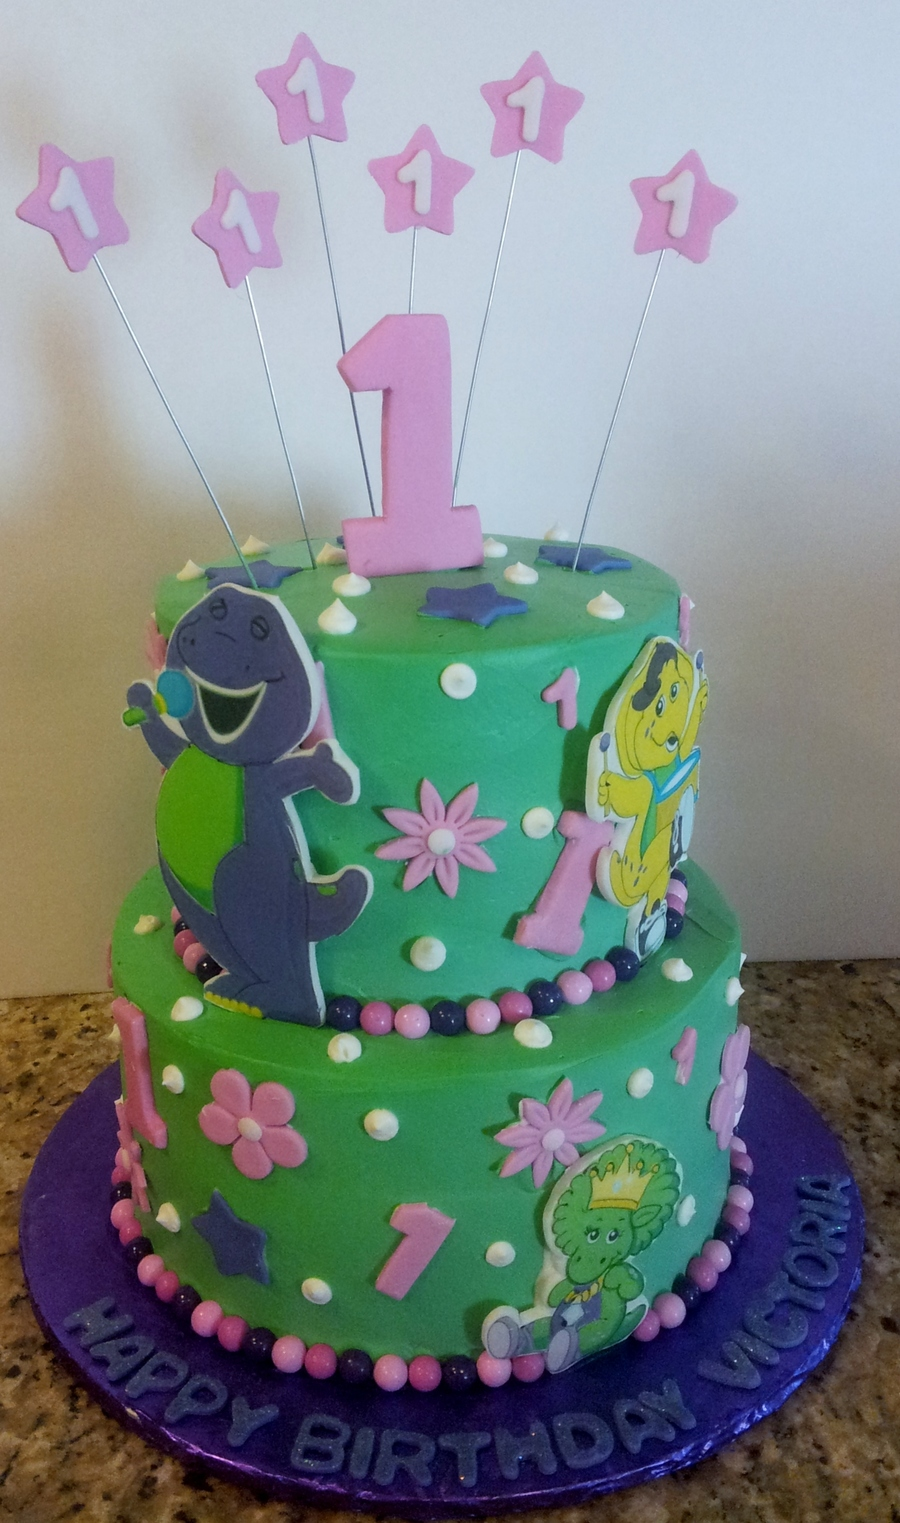 Barney, Baby Bop And Bj! on Cake Central